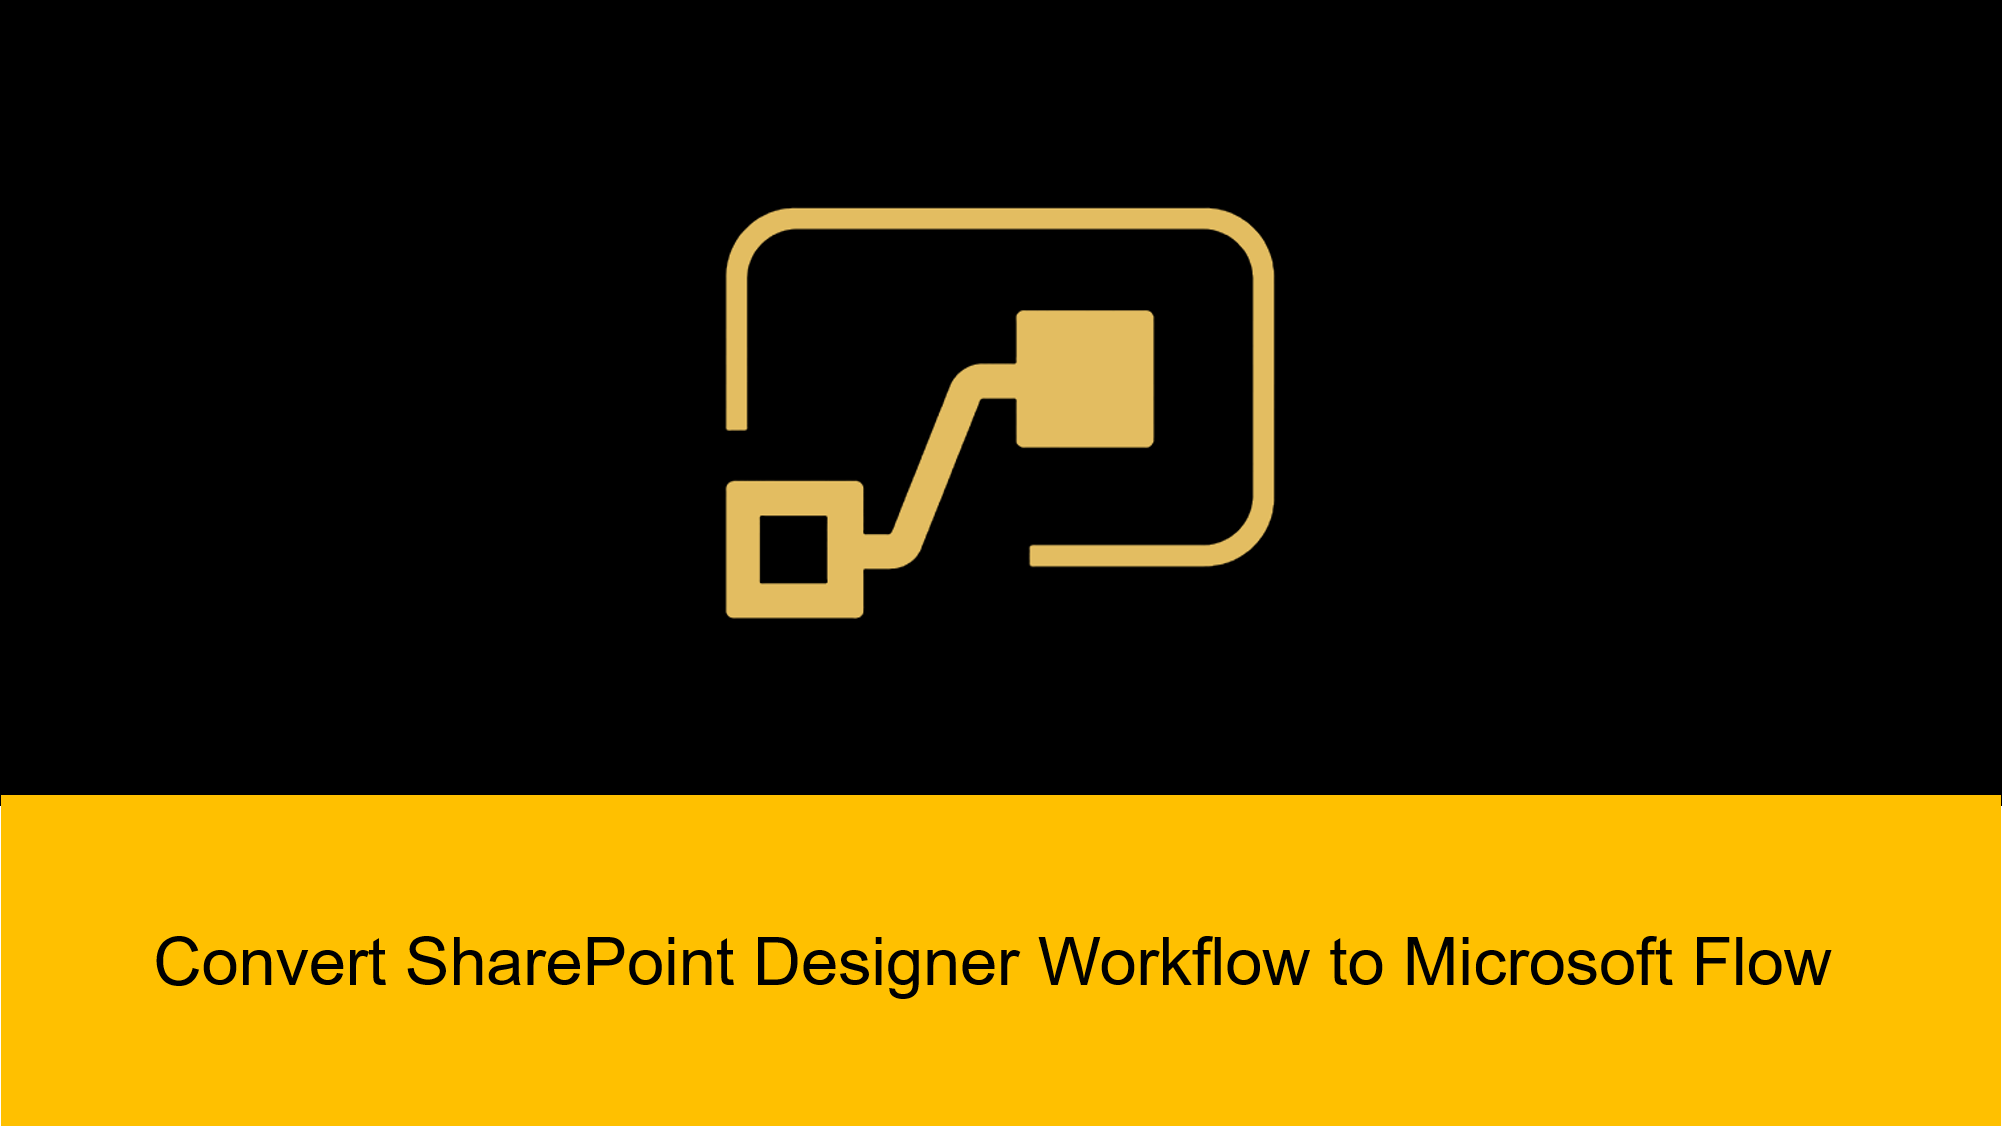 I will convert a SharePoint Designer Workflow to Microsoft Power Automate